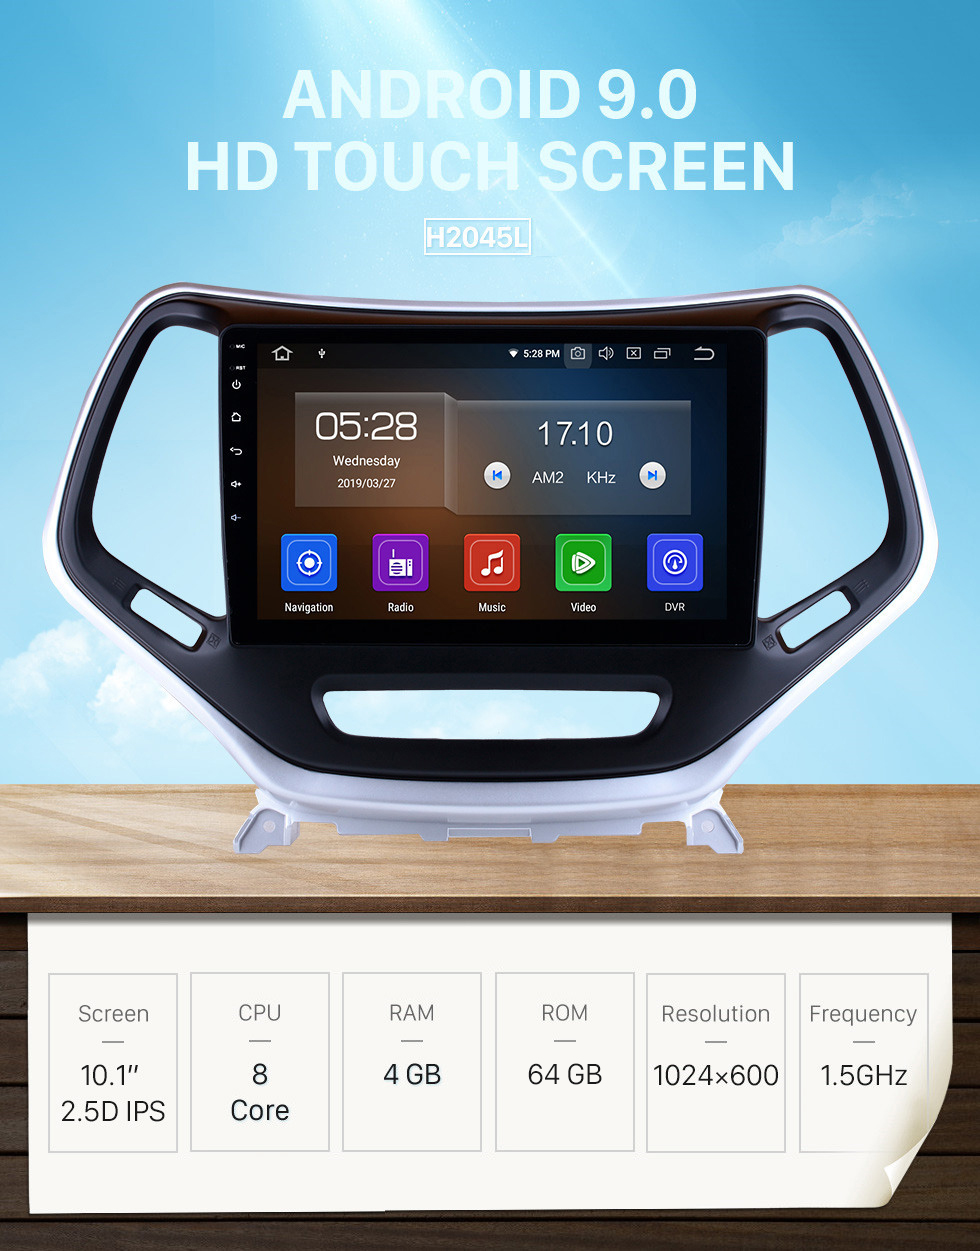 Seicane 10.1 Inch Android 9.0 Touch Screen radio Bluetooth GPS Navigation system For 2016 Jeep Cherokee Jeep grand Cherokee with TPMS DVR OBD II USB 3G WiFi Rear camera Steering Wheel Control HD 1080P Video AUX